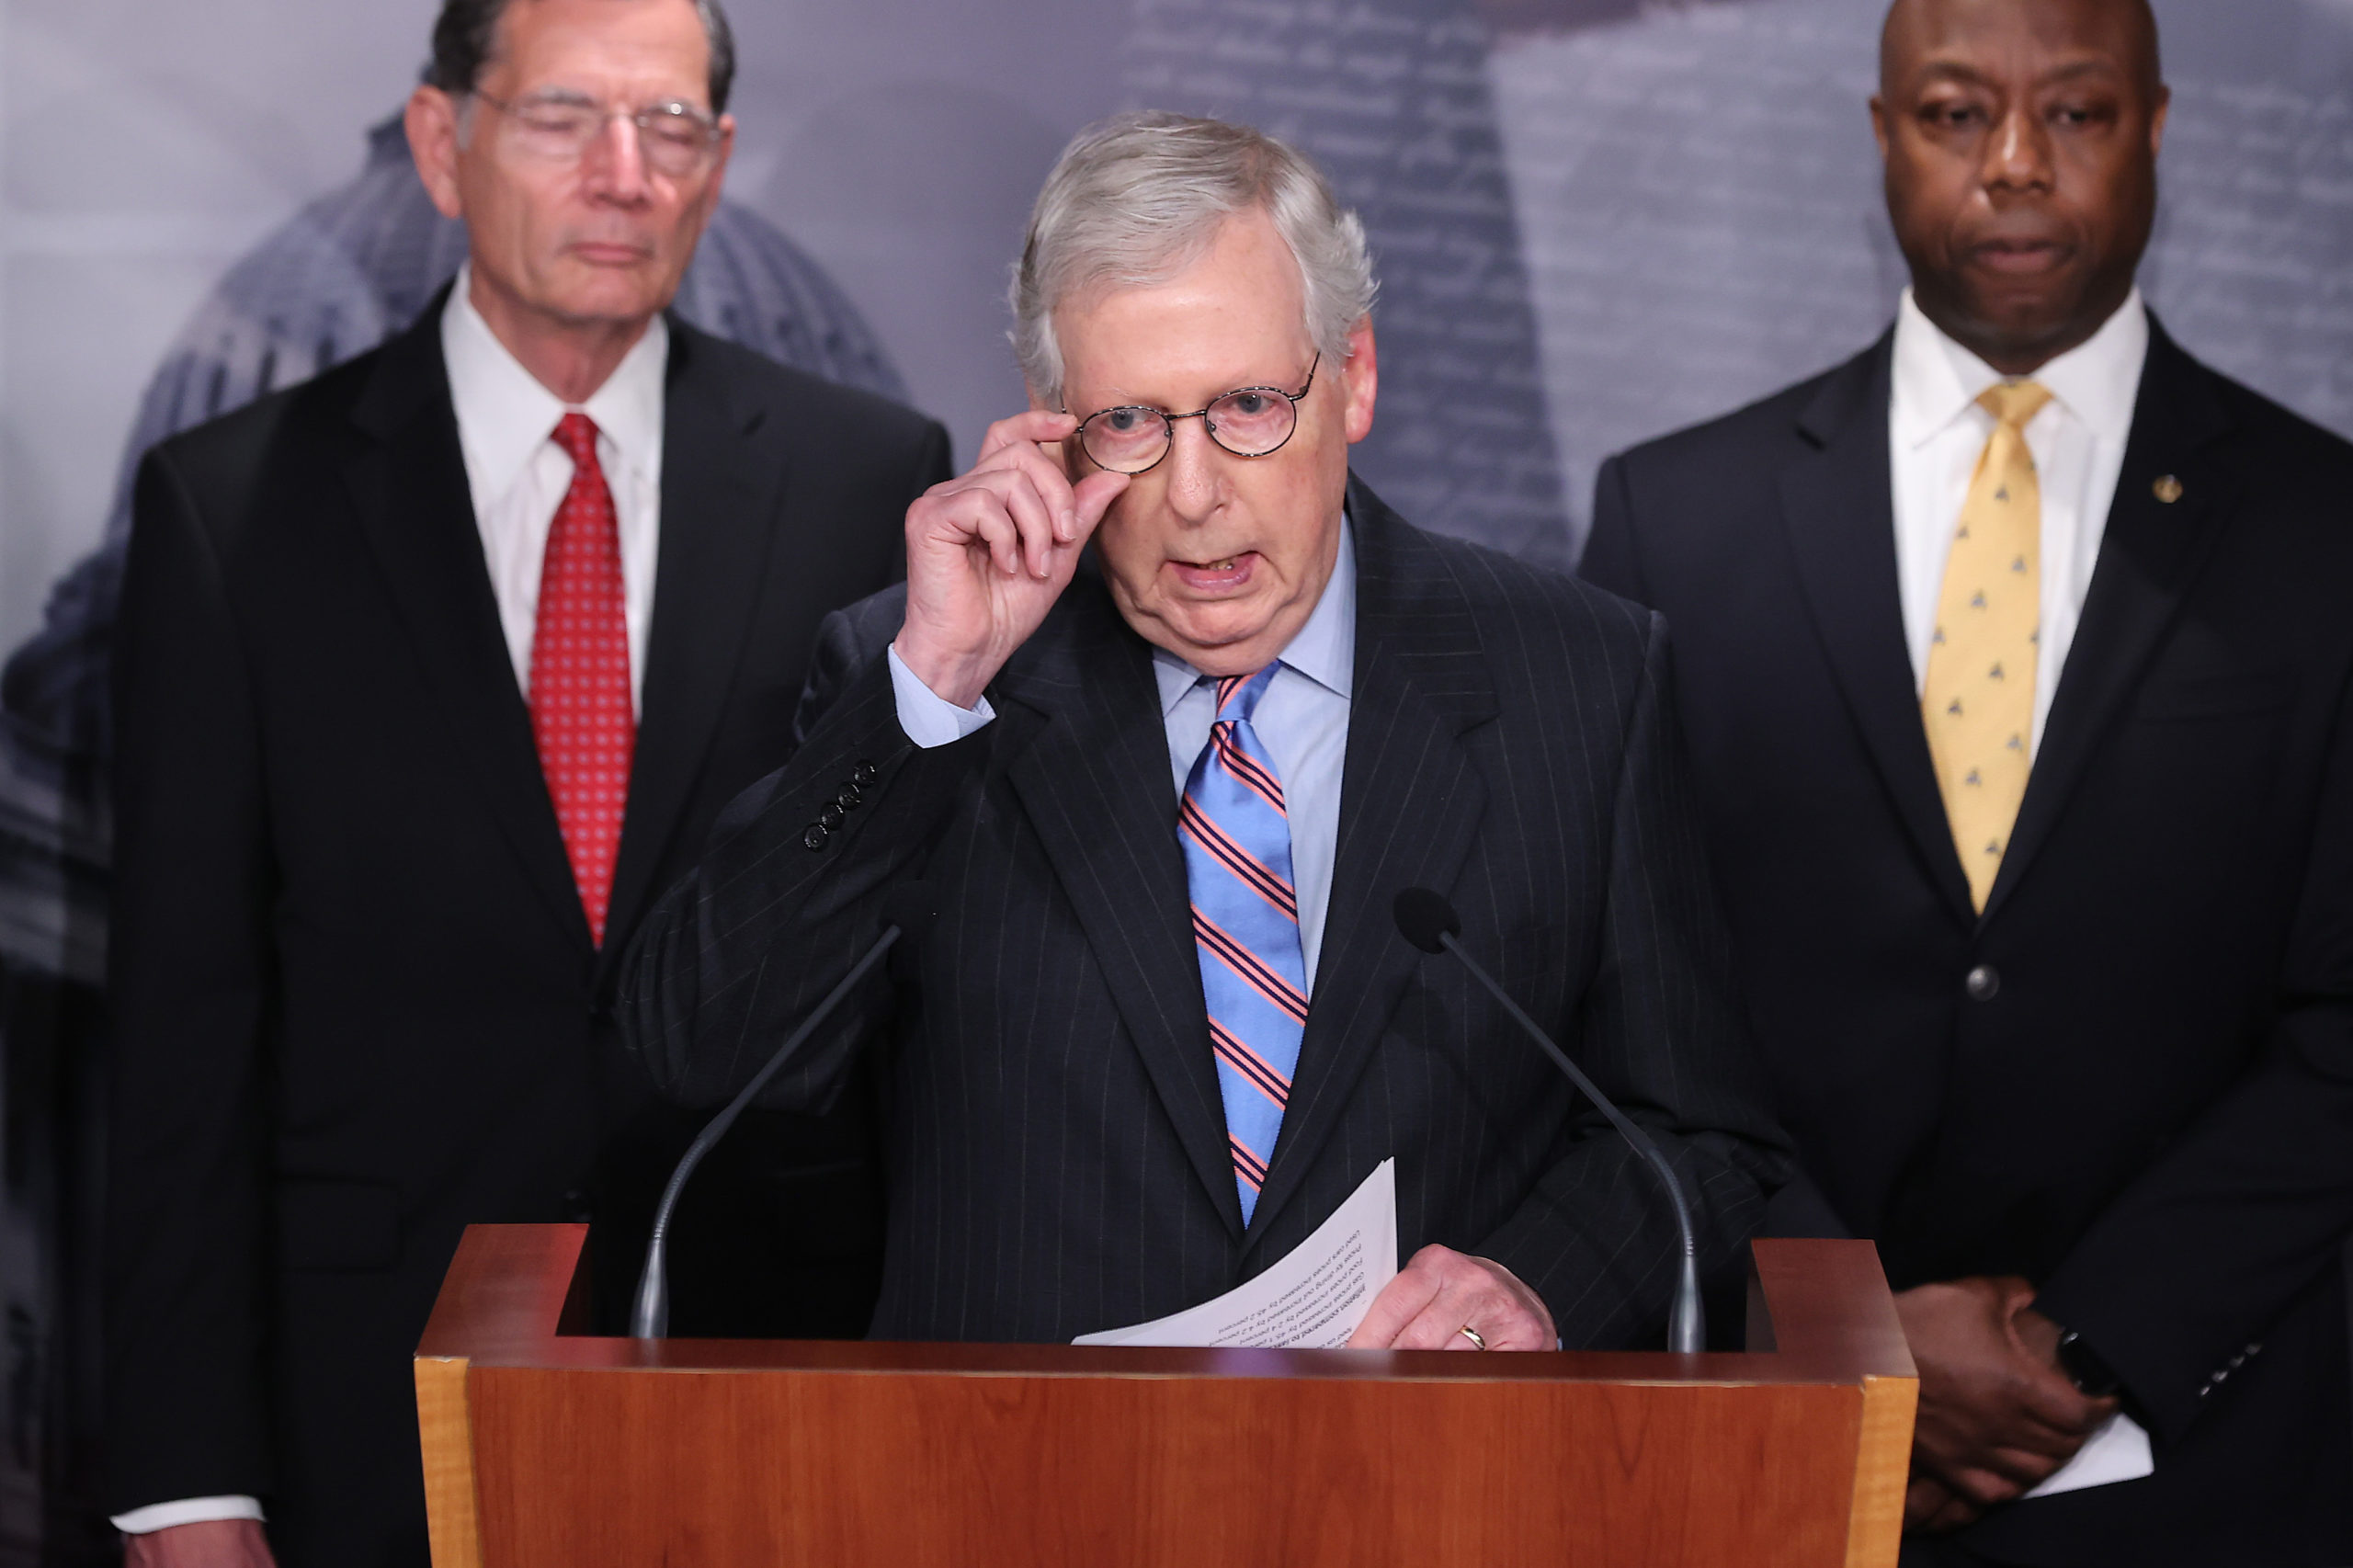 Senate Minority Leader Mitch McConnell joins other Republicans during a news conference on Thursday. (Chip Somodevilla/Getty Images)